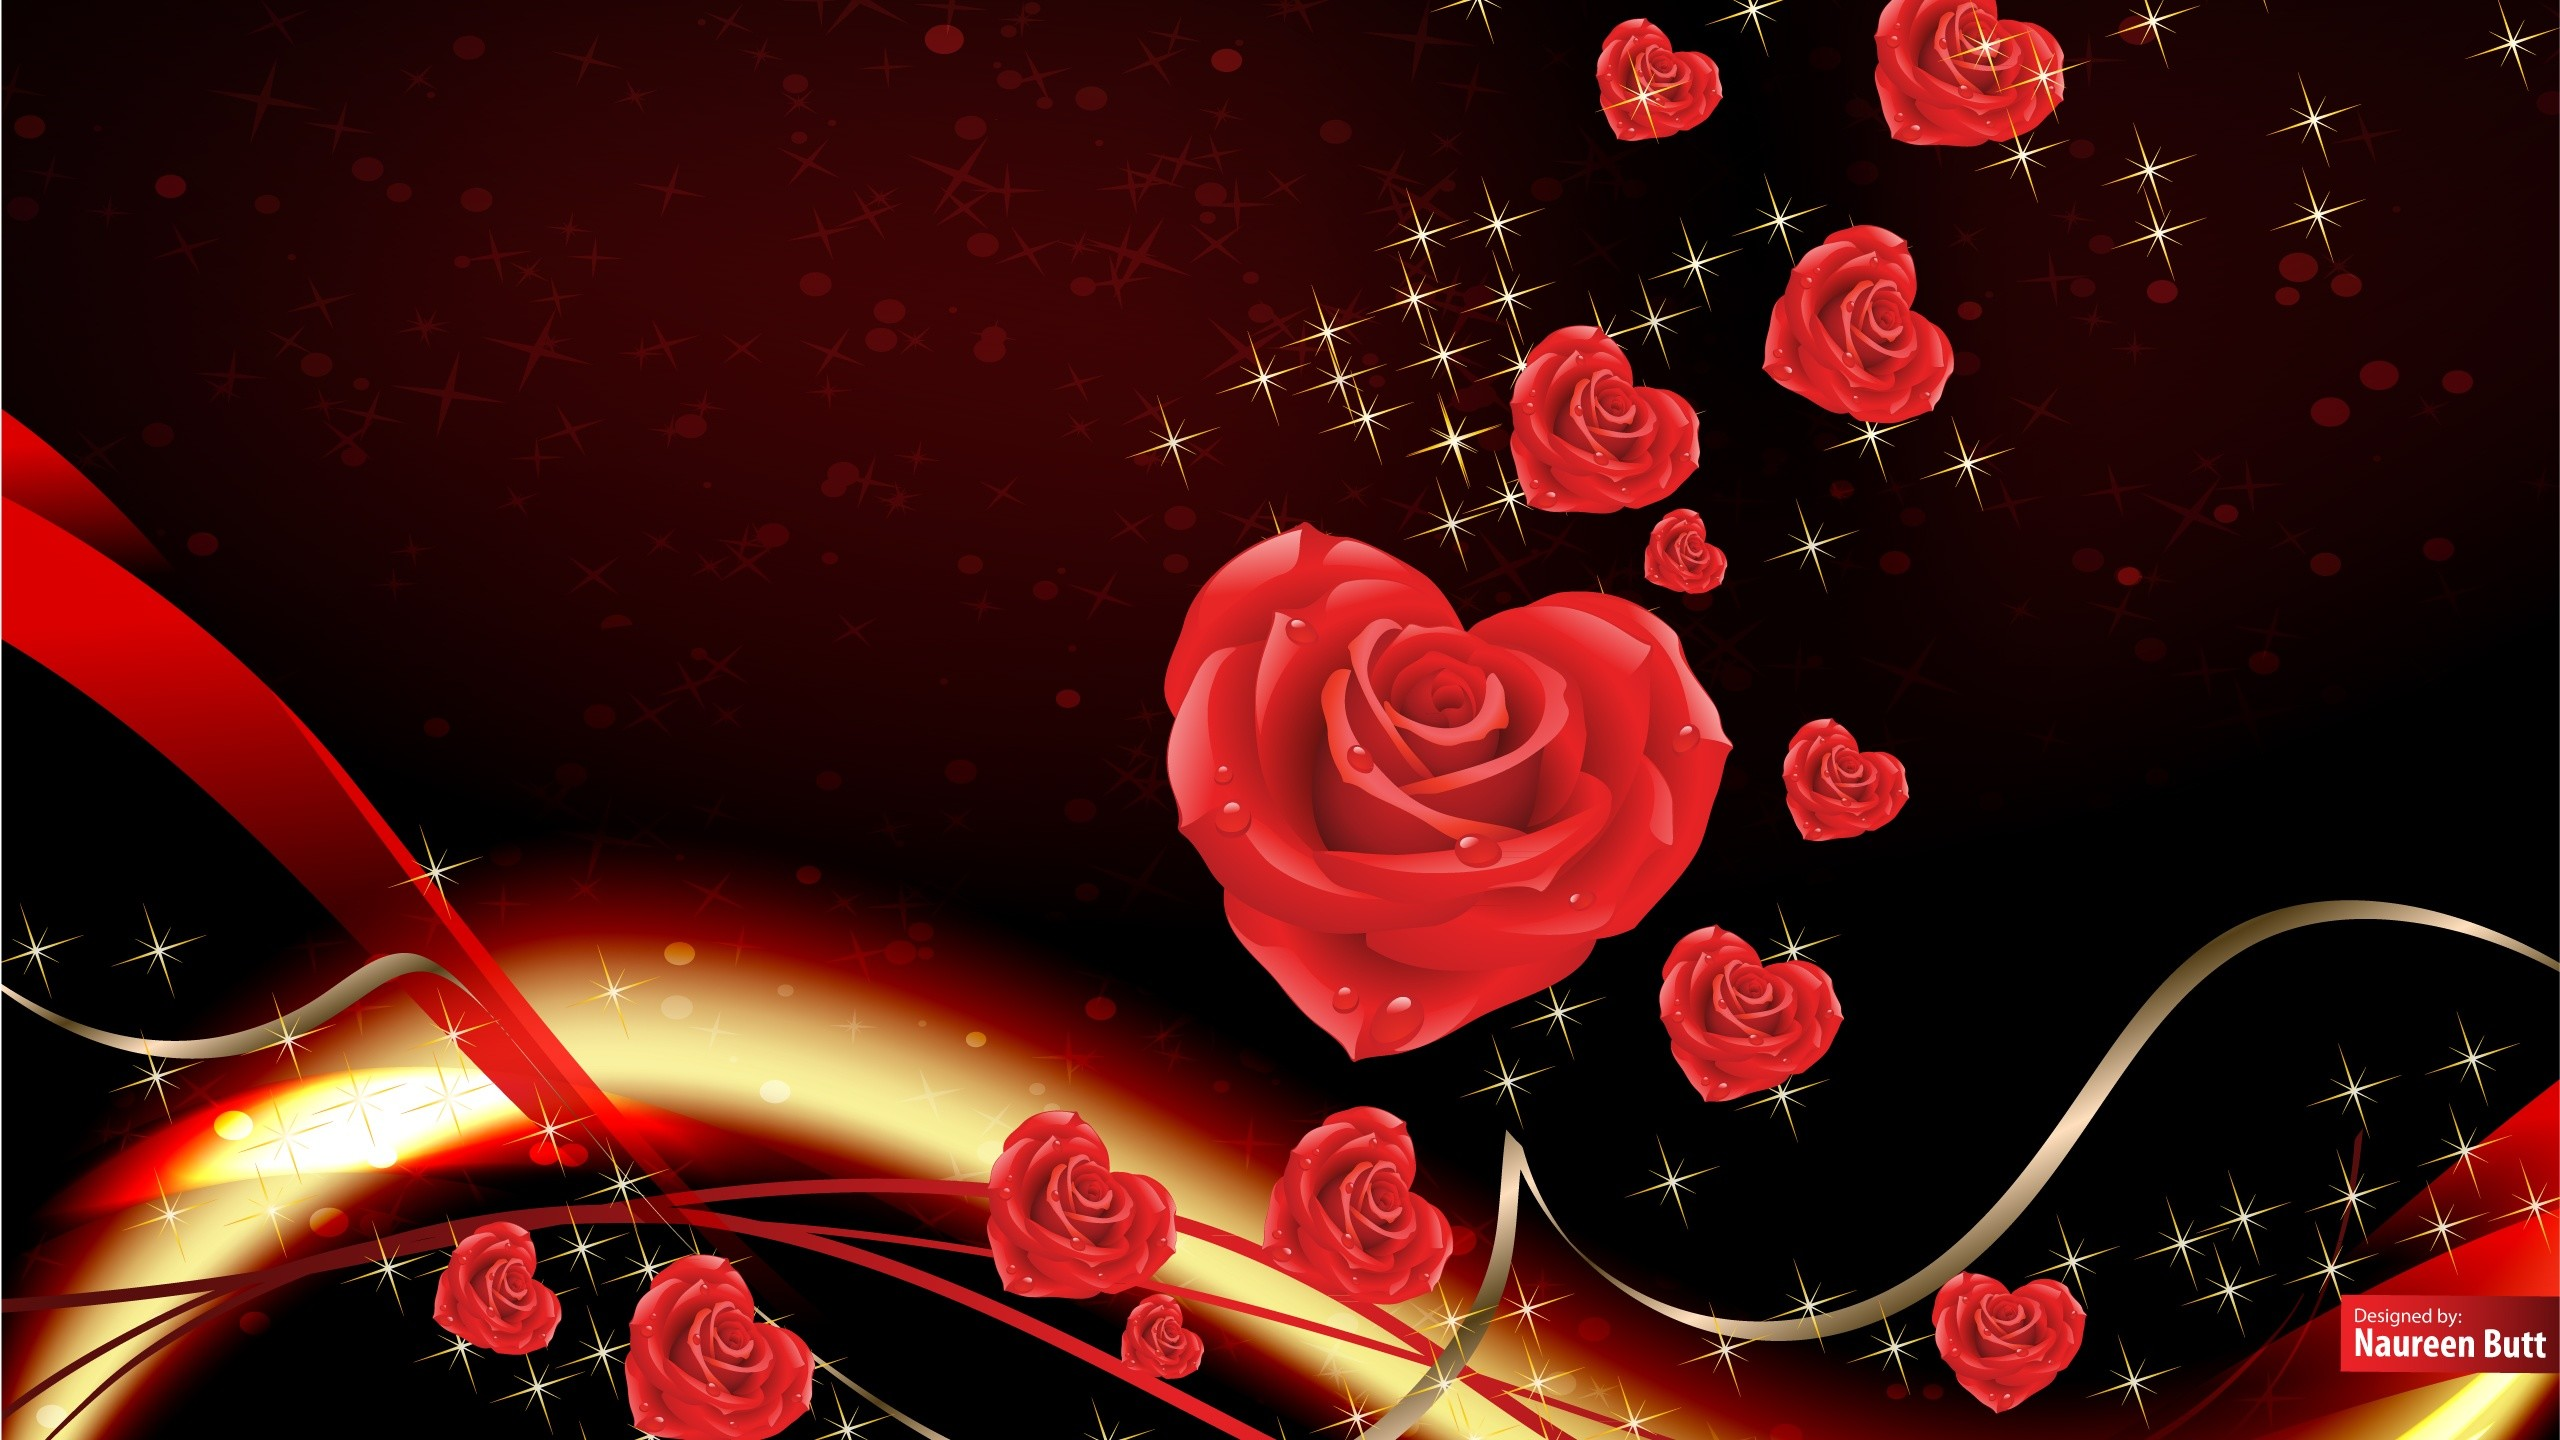 2560x1440 Collection of Free Valentine Desktop Wallpaper on HDWallpapers